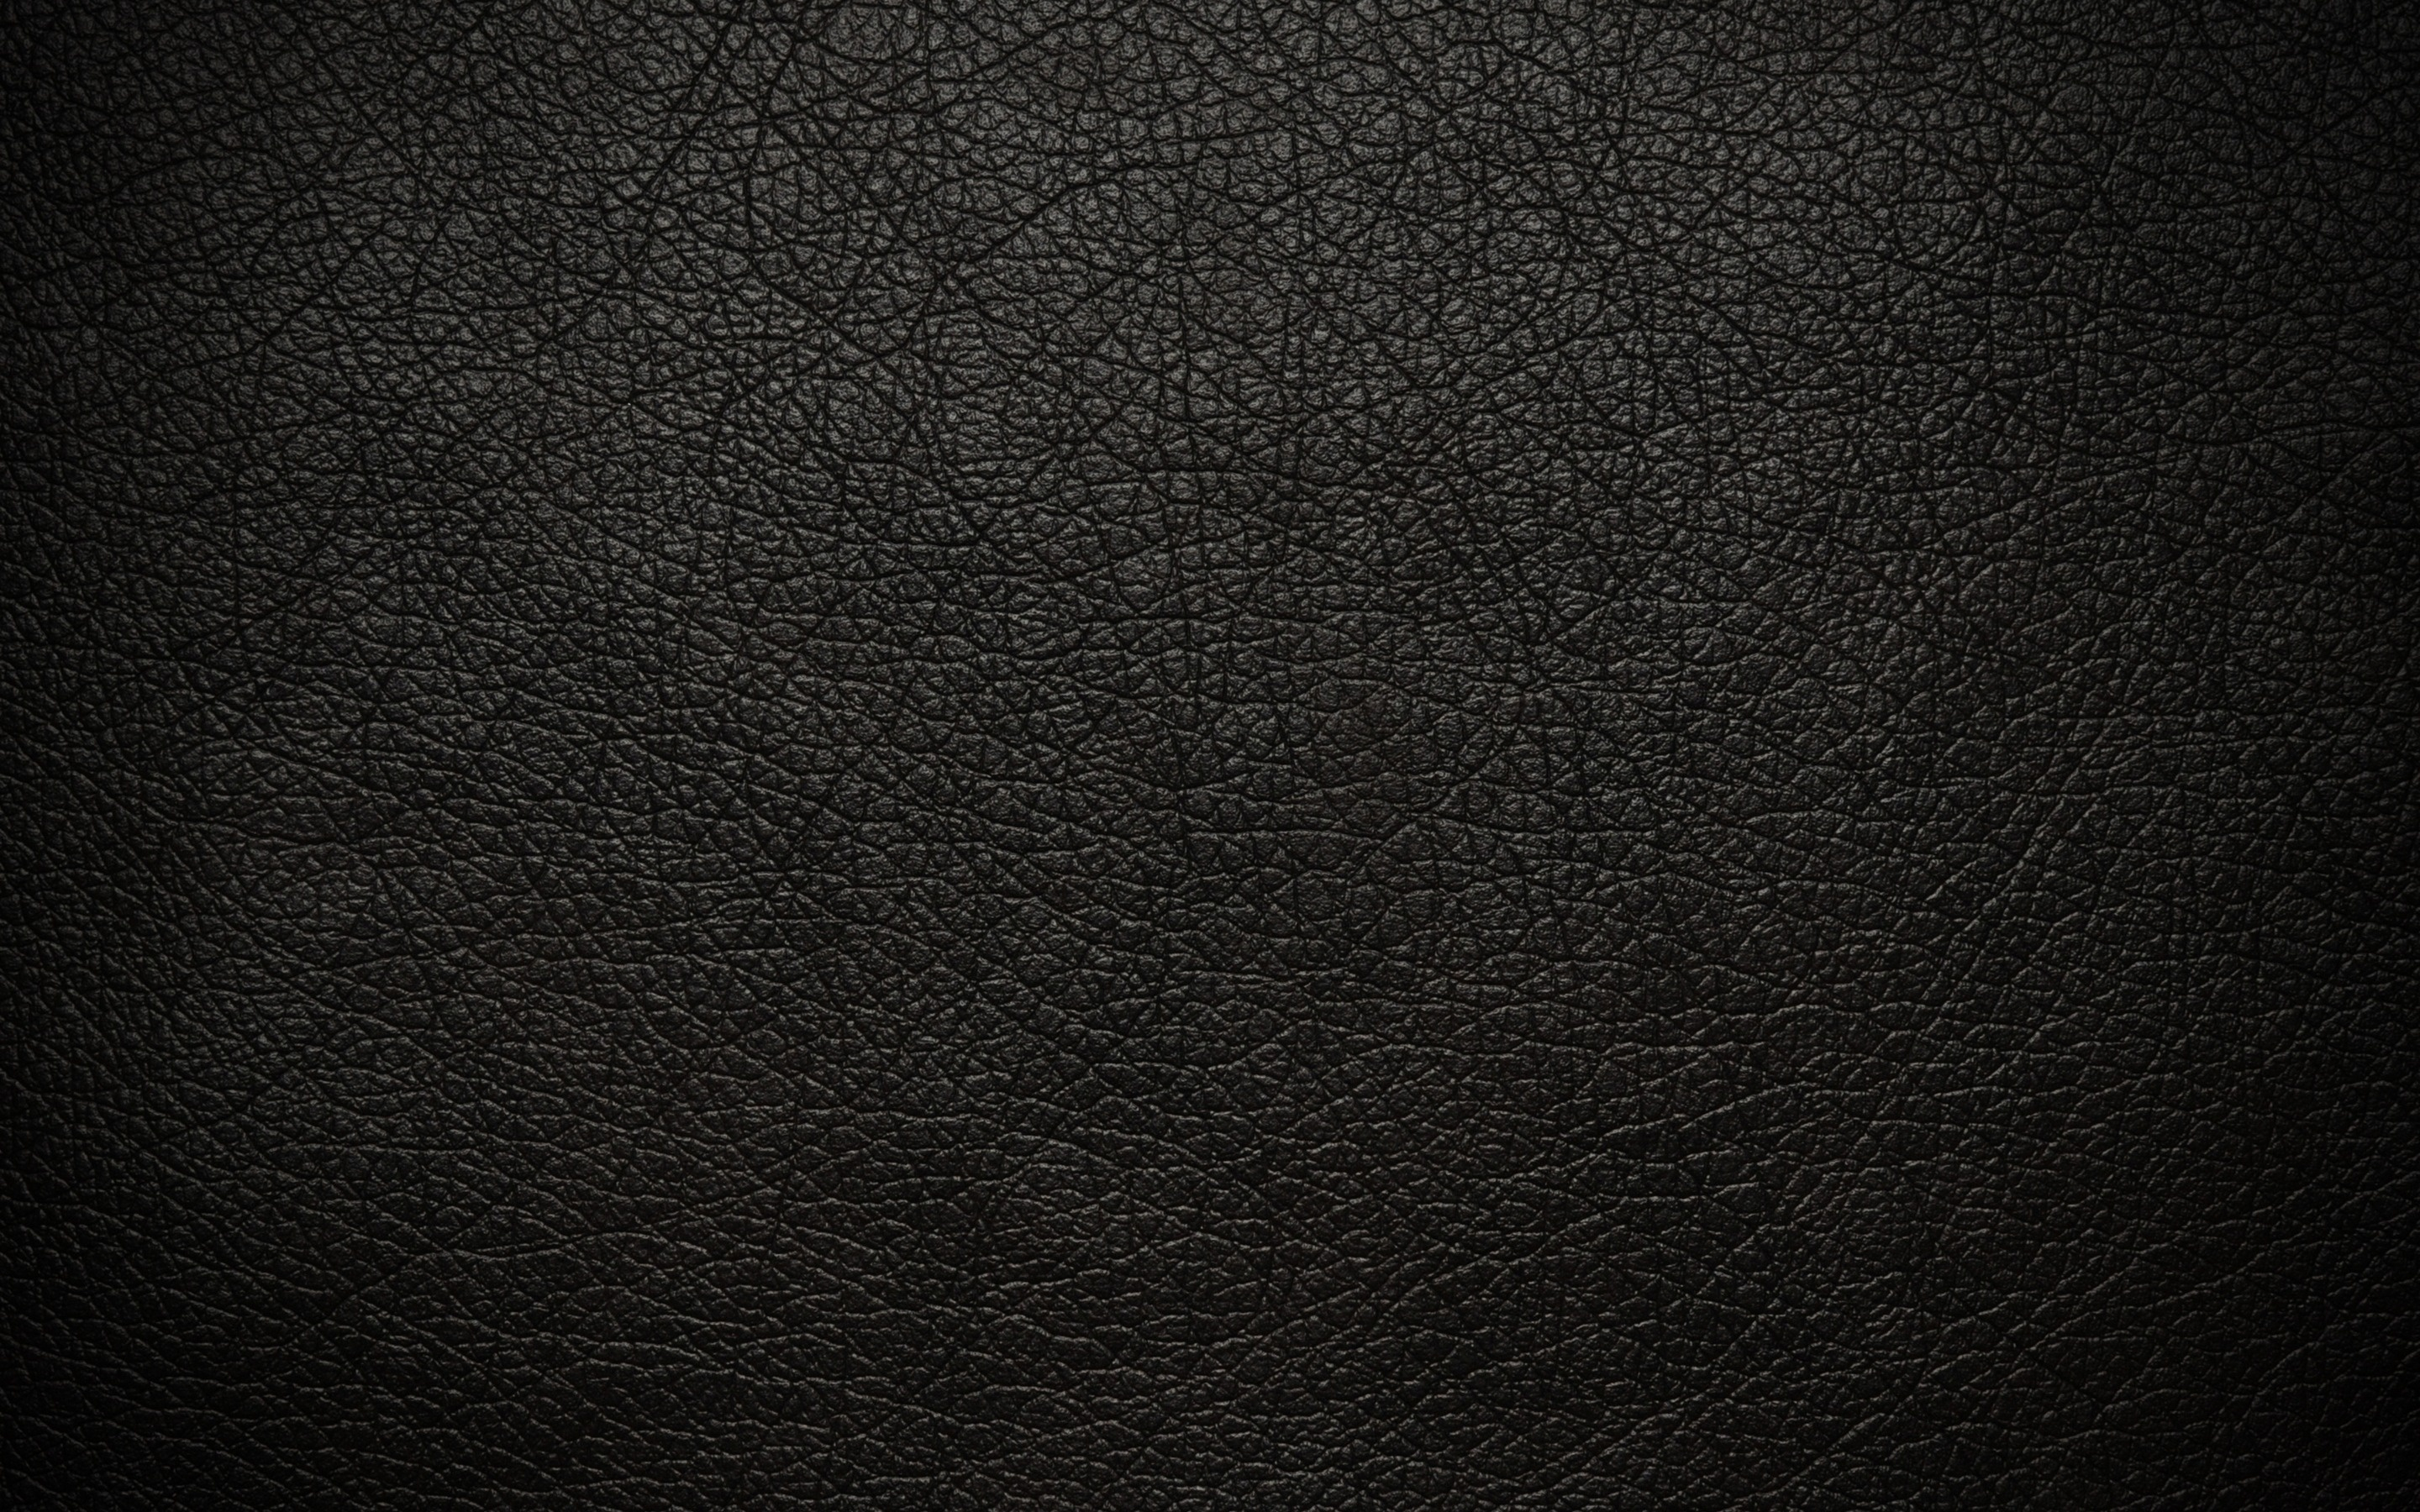 Free Leather Wallpaper 22544 1920x1200 px